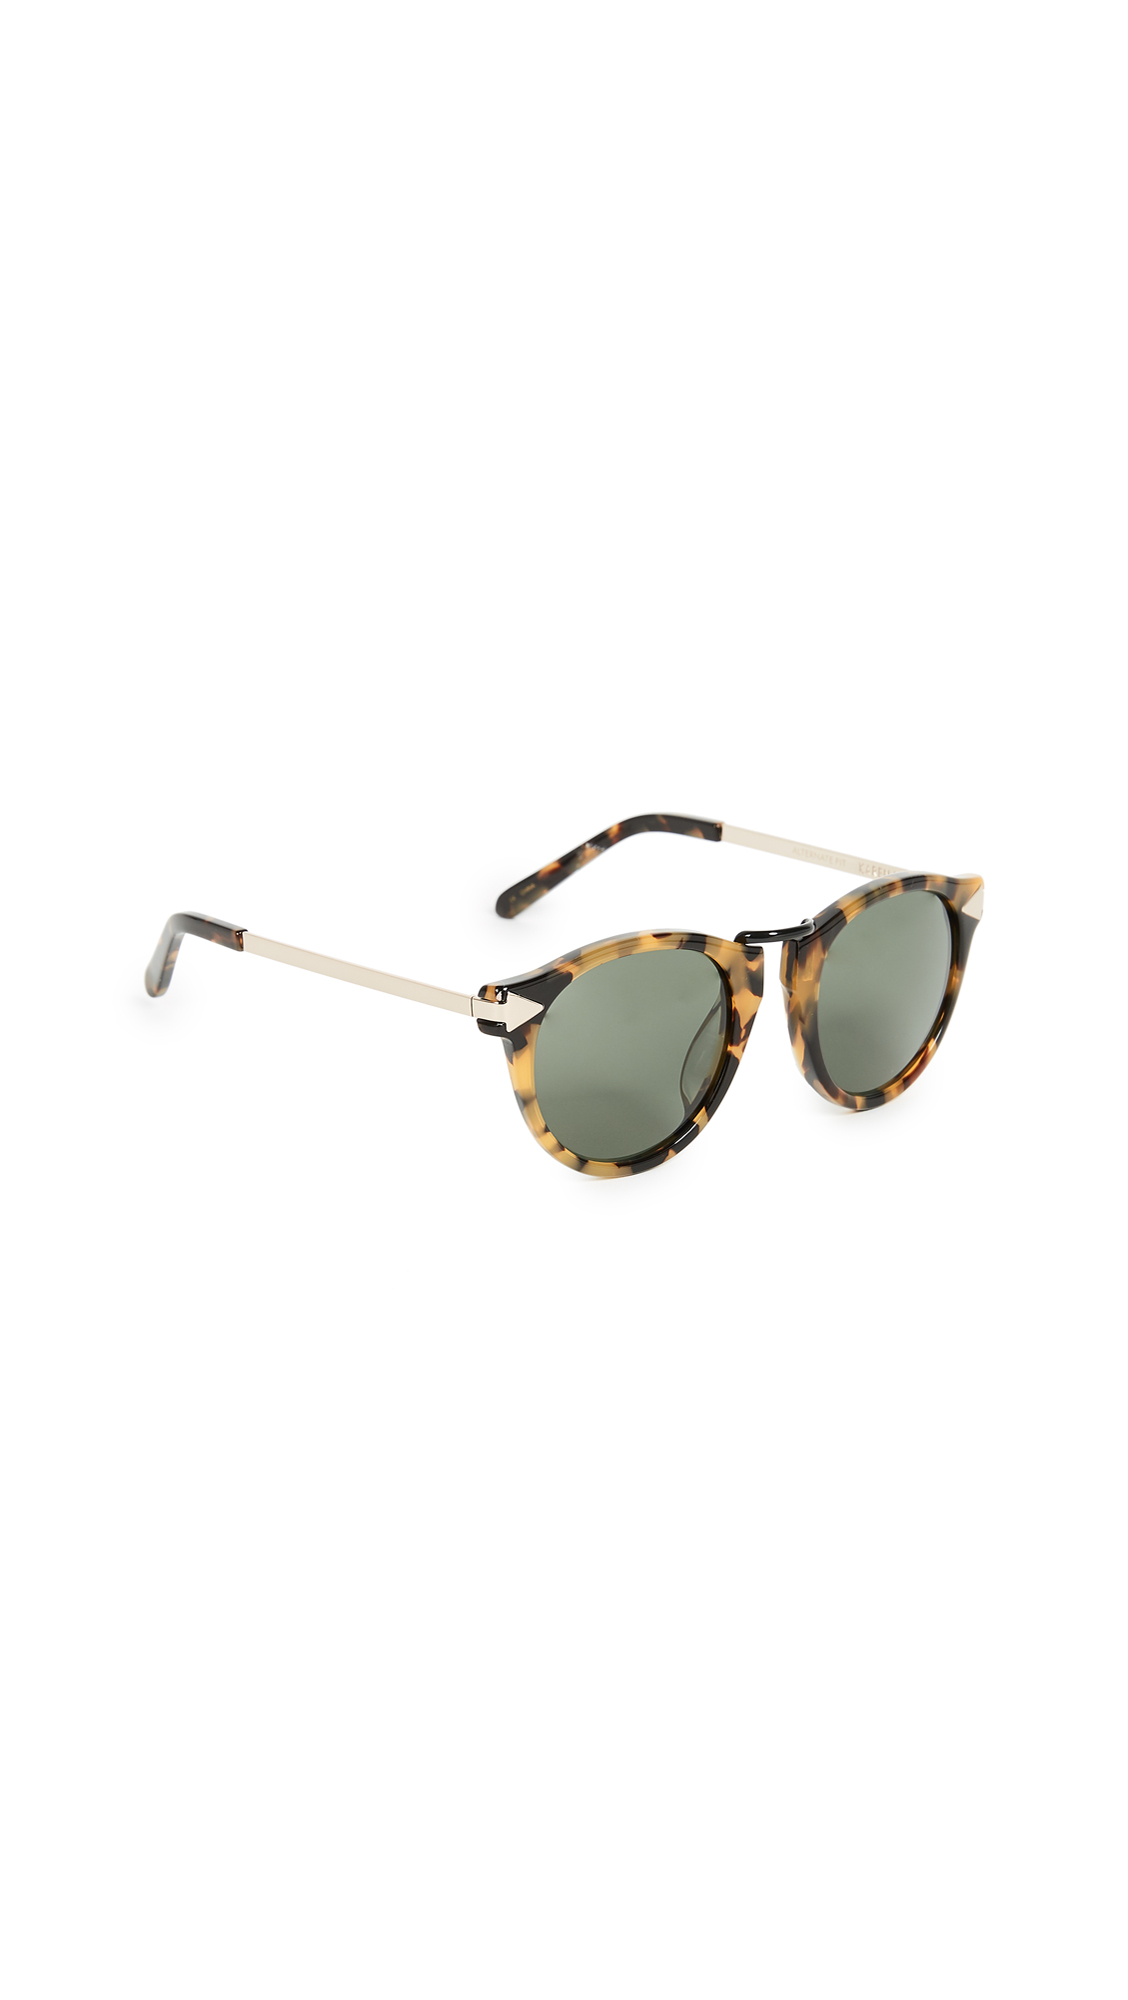 Karen Walker Special Fit Helter Skelter Sunglasses In Crazy Tort/G15 Mono